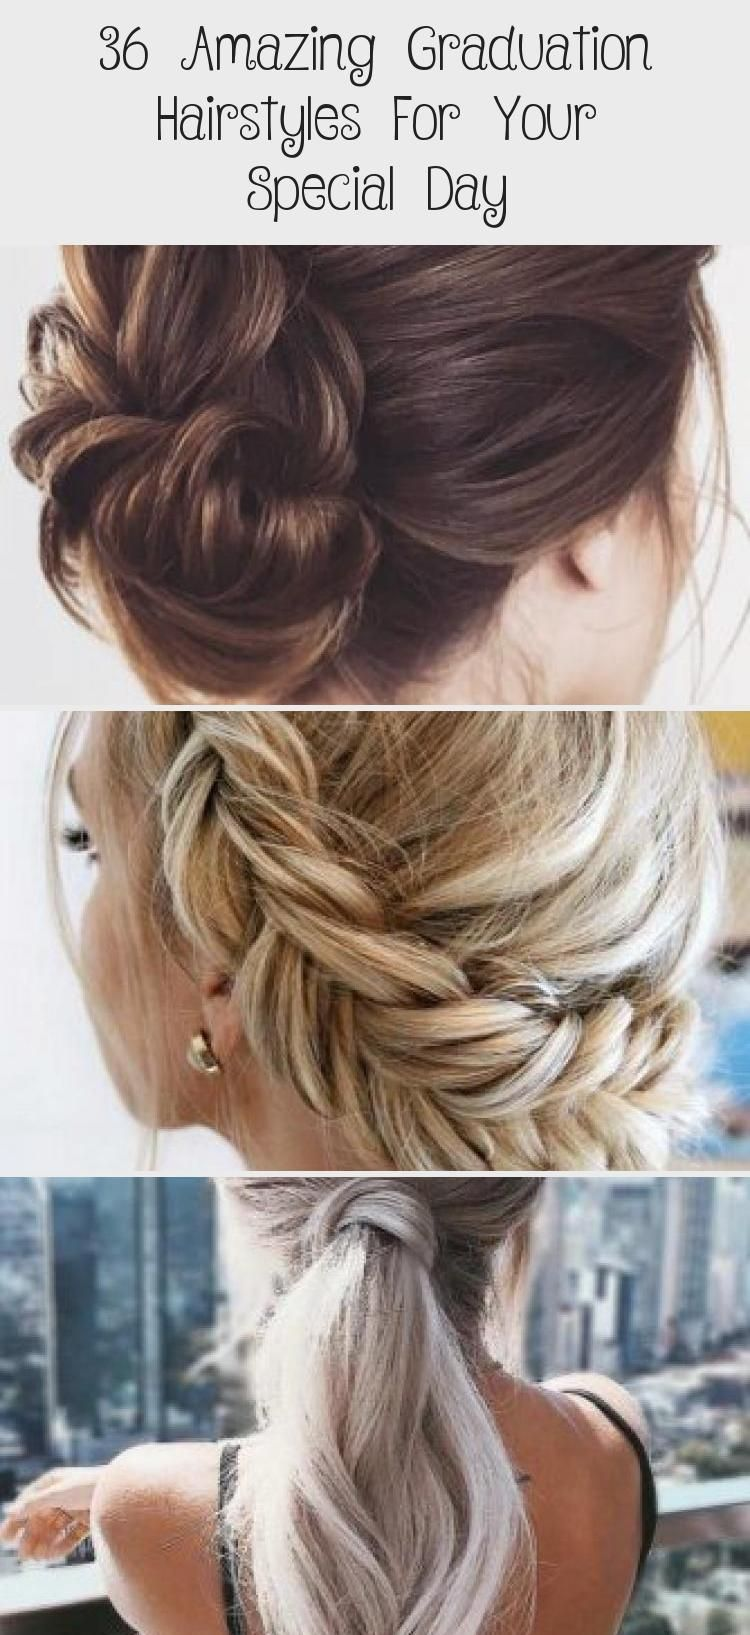 36 Amazing Graduation Hairstyles For Your Special Day – Hair Styles